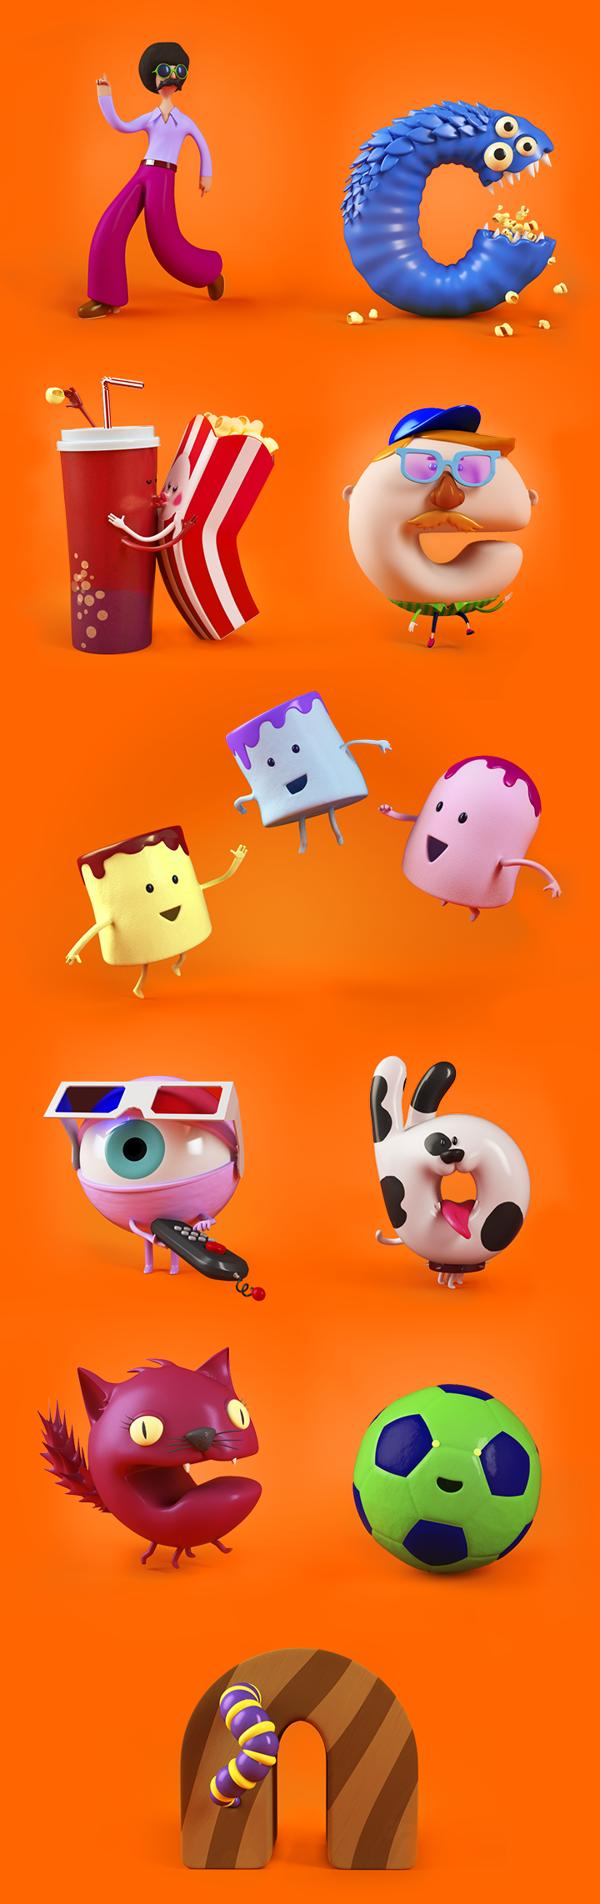 Graphics Studio Creates Cute Alphabet Cartoon Characters